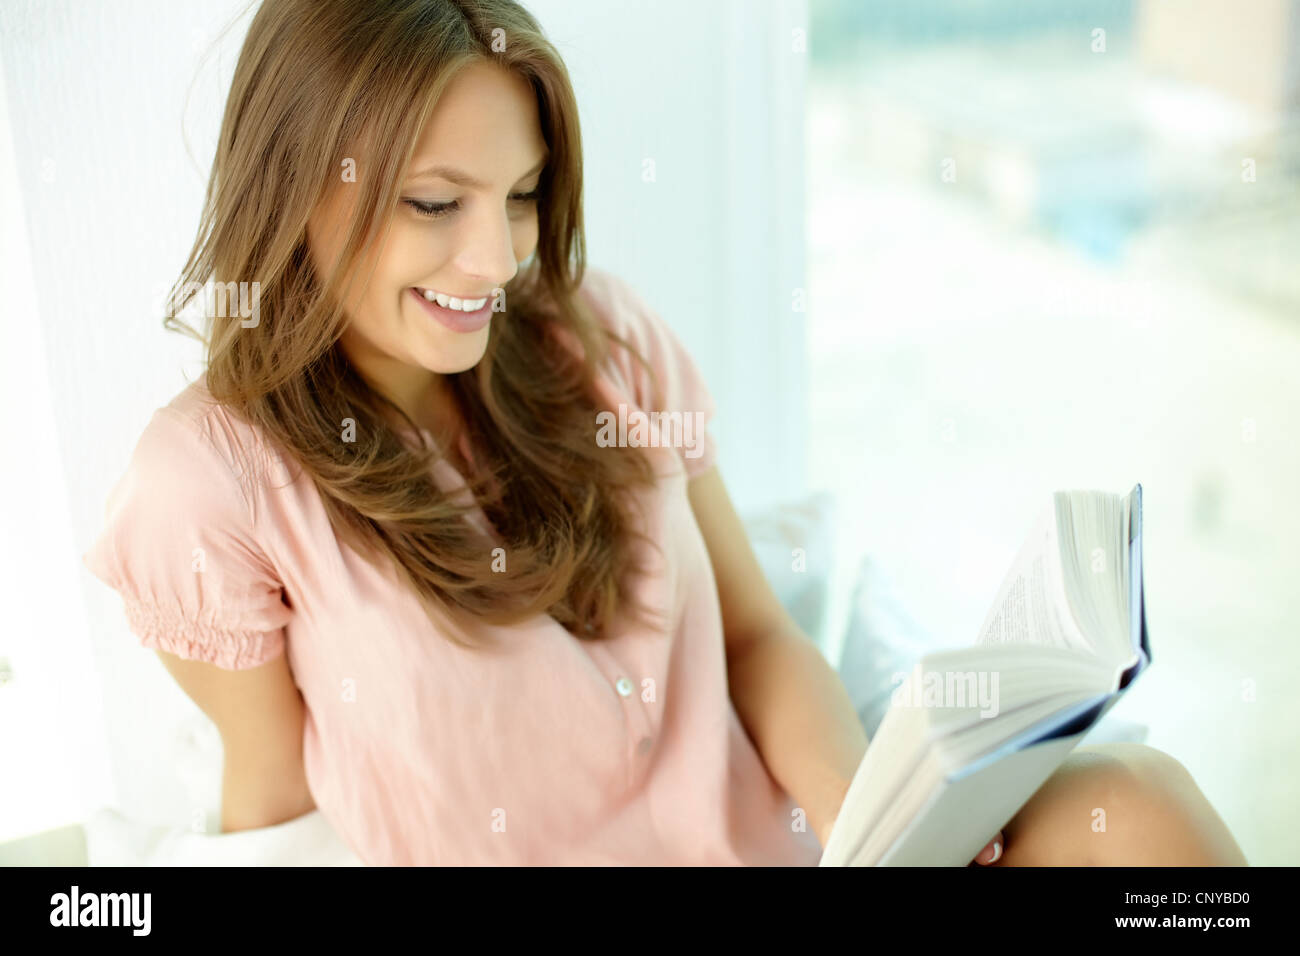 Girl being totally absorbed in an interesting book - Stock Image